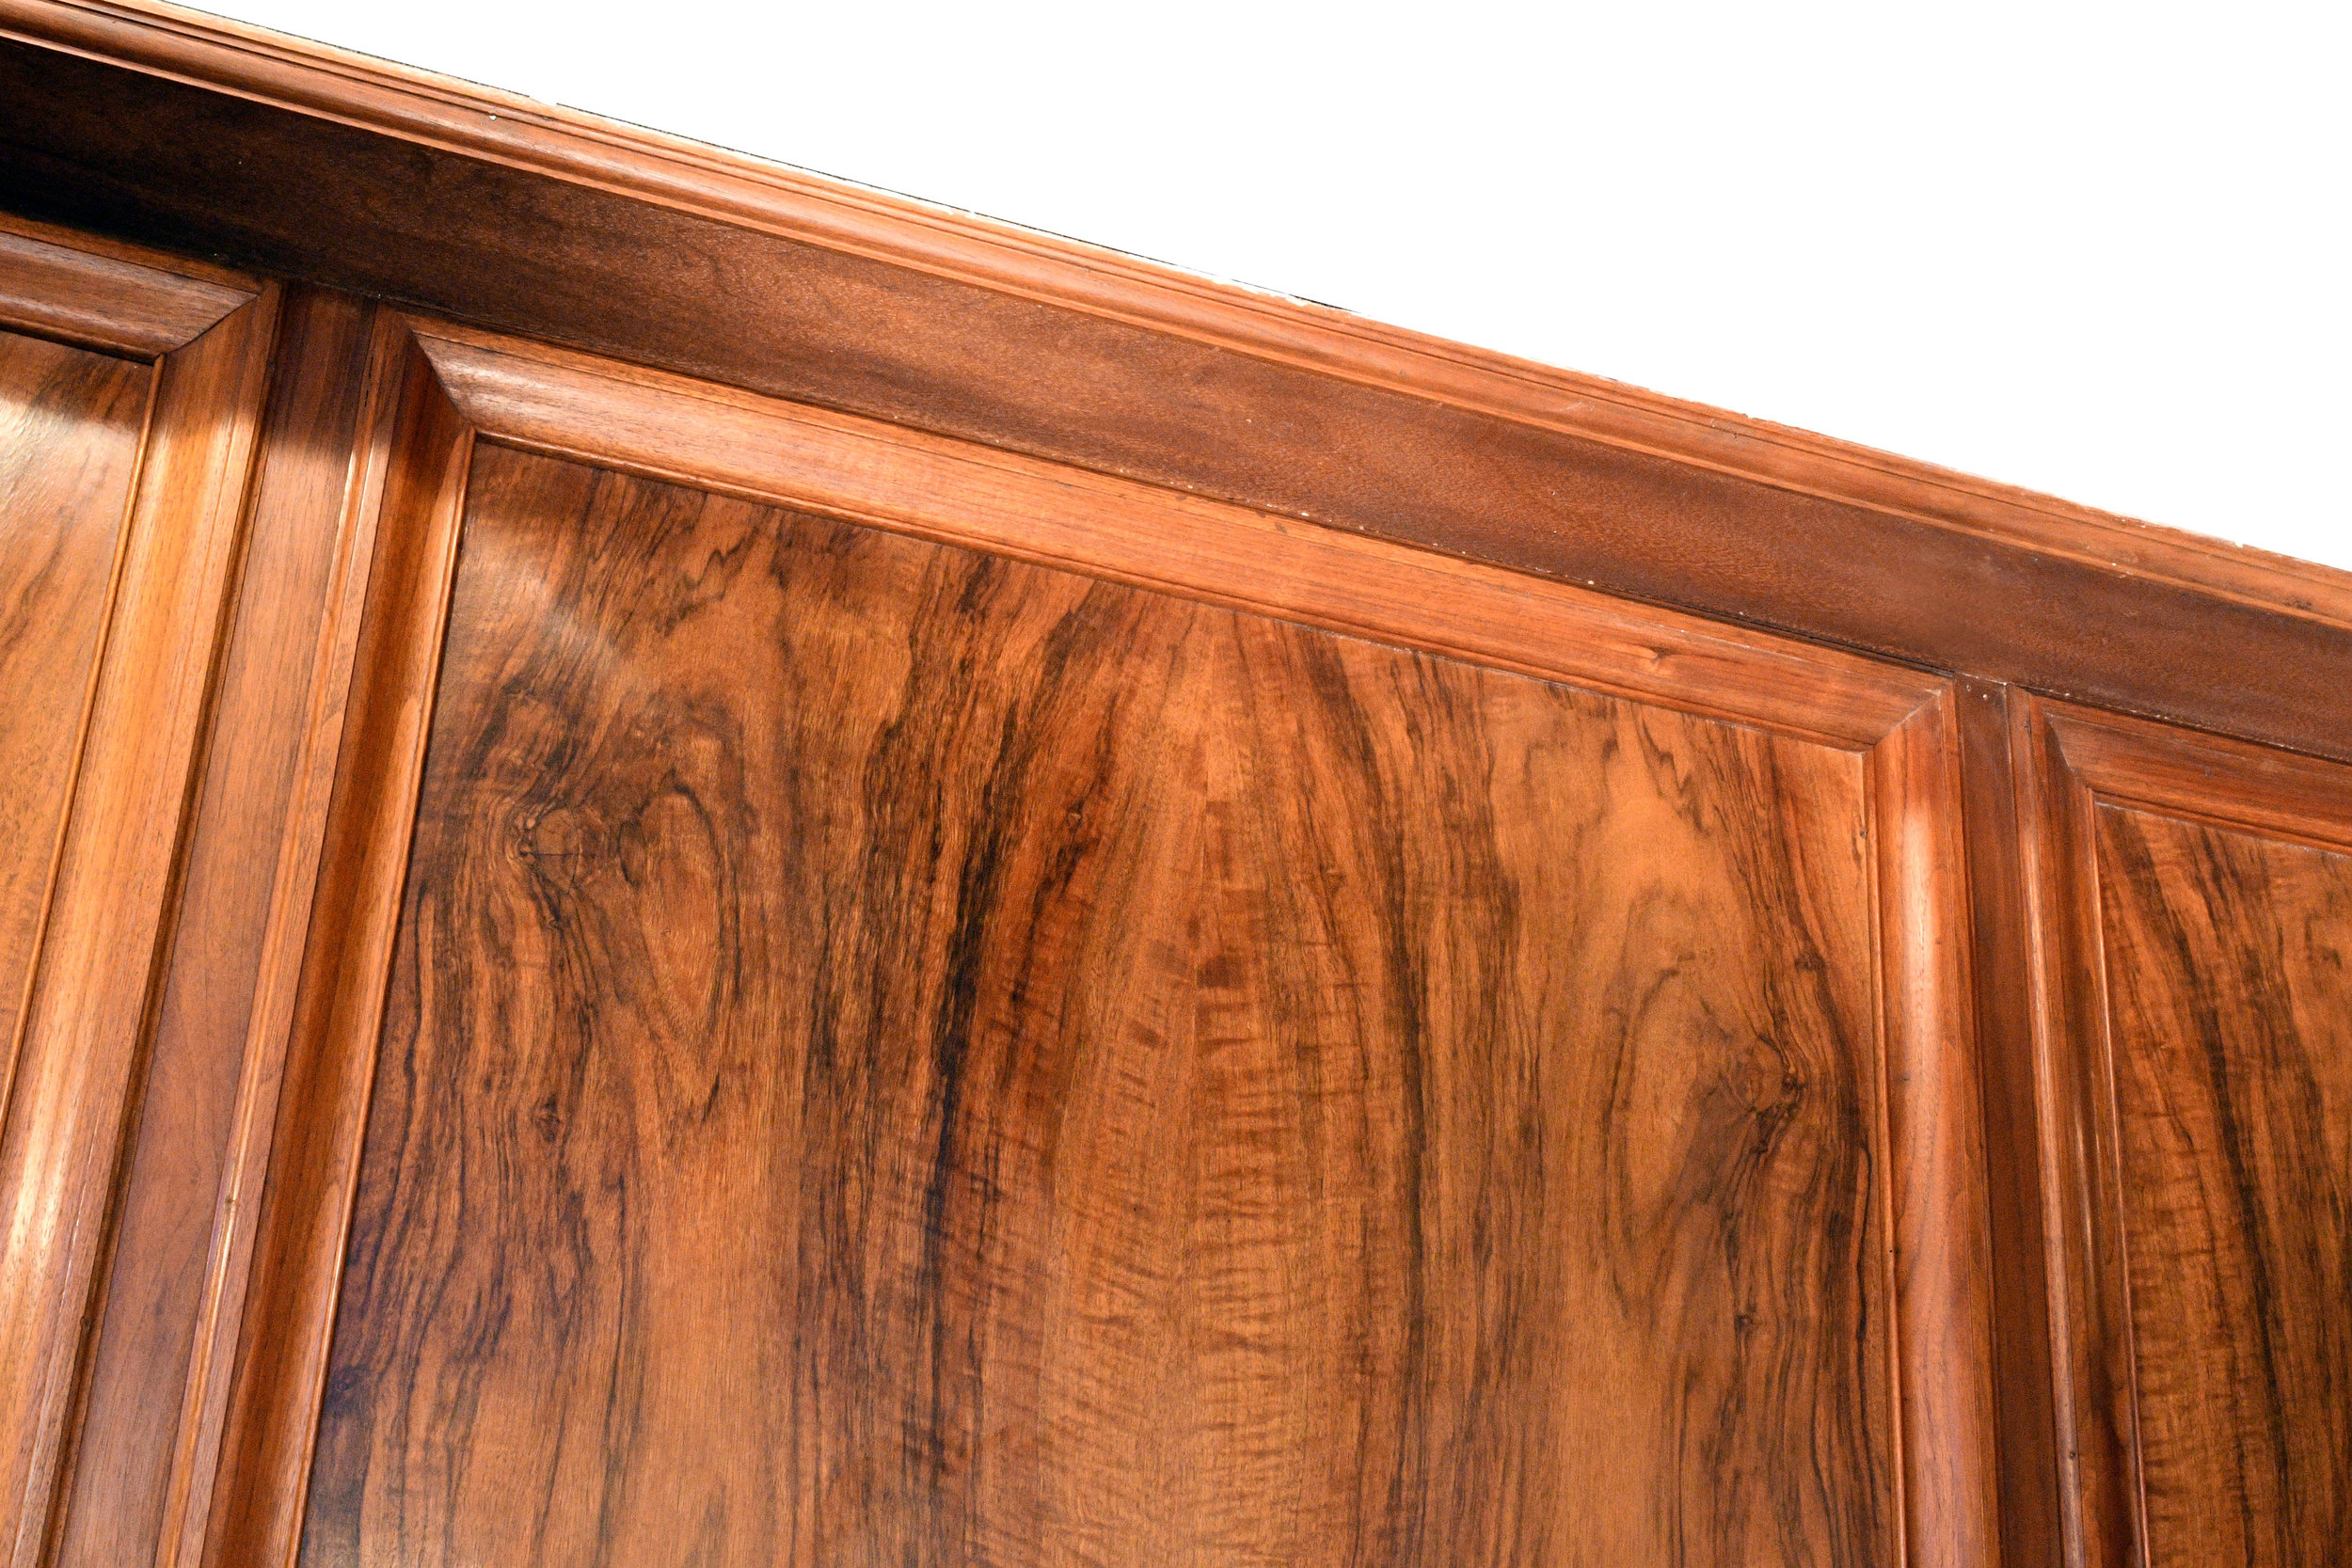 47615-burled-walnut-mantel-upper-detail.jpg